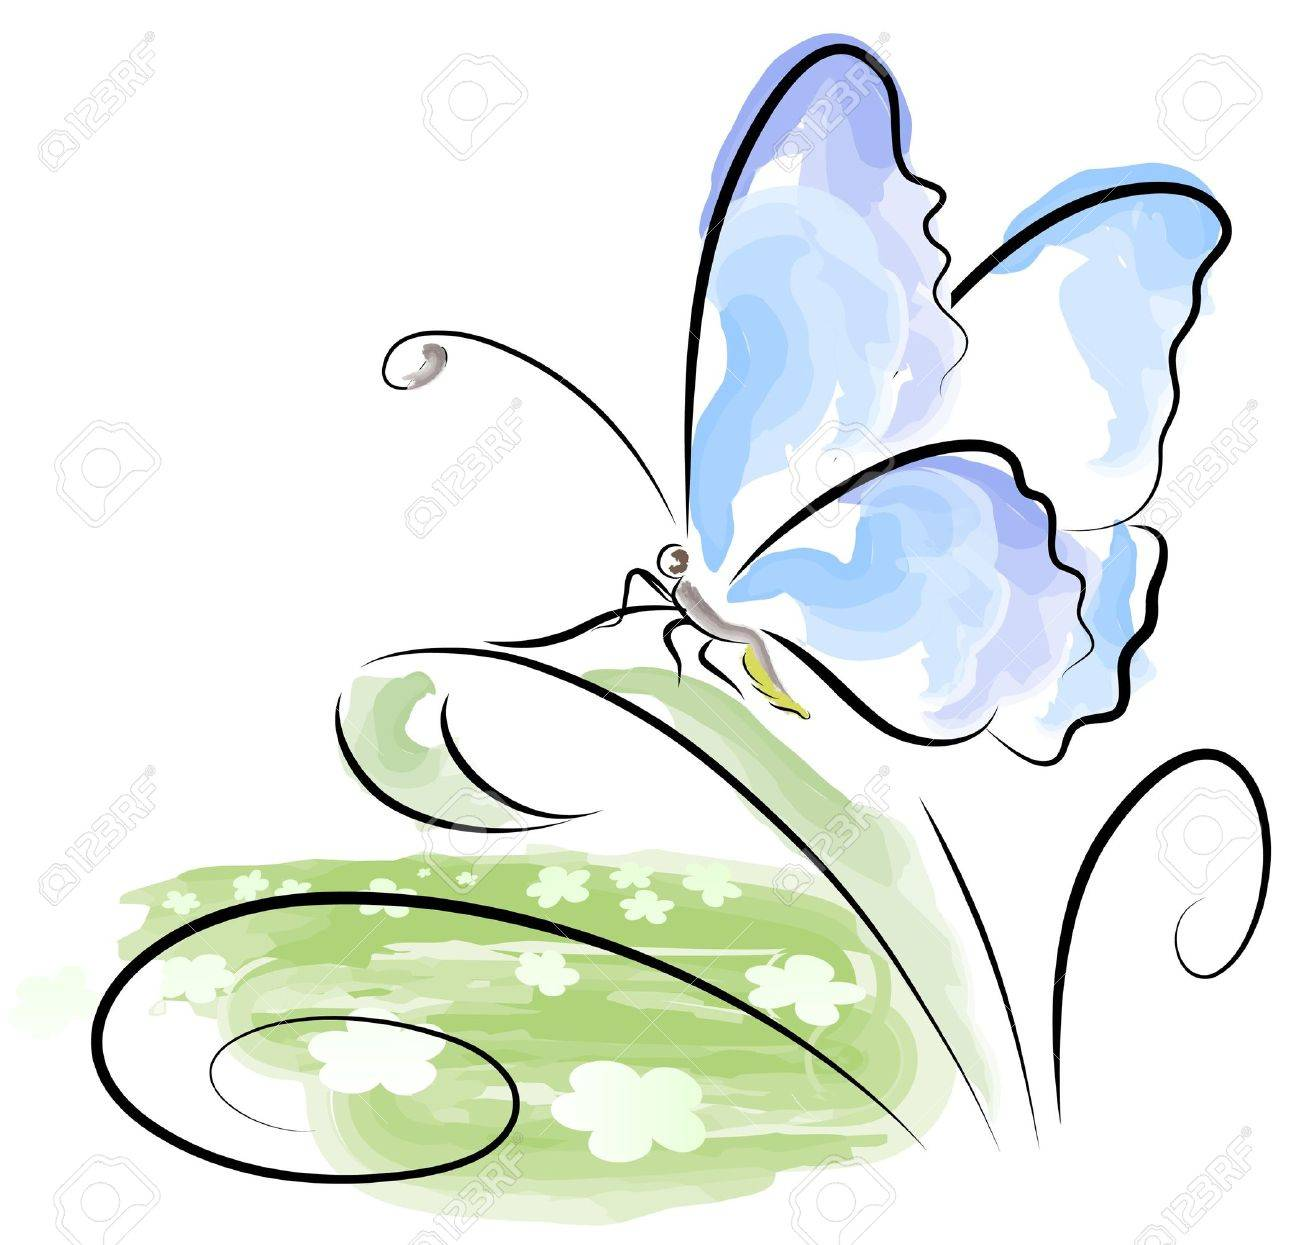 butterfly sitting on grass over flower field royalty free cliparts